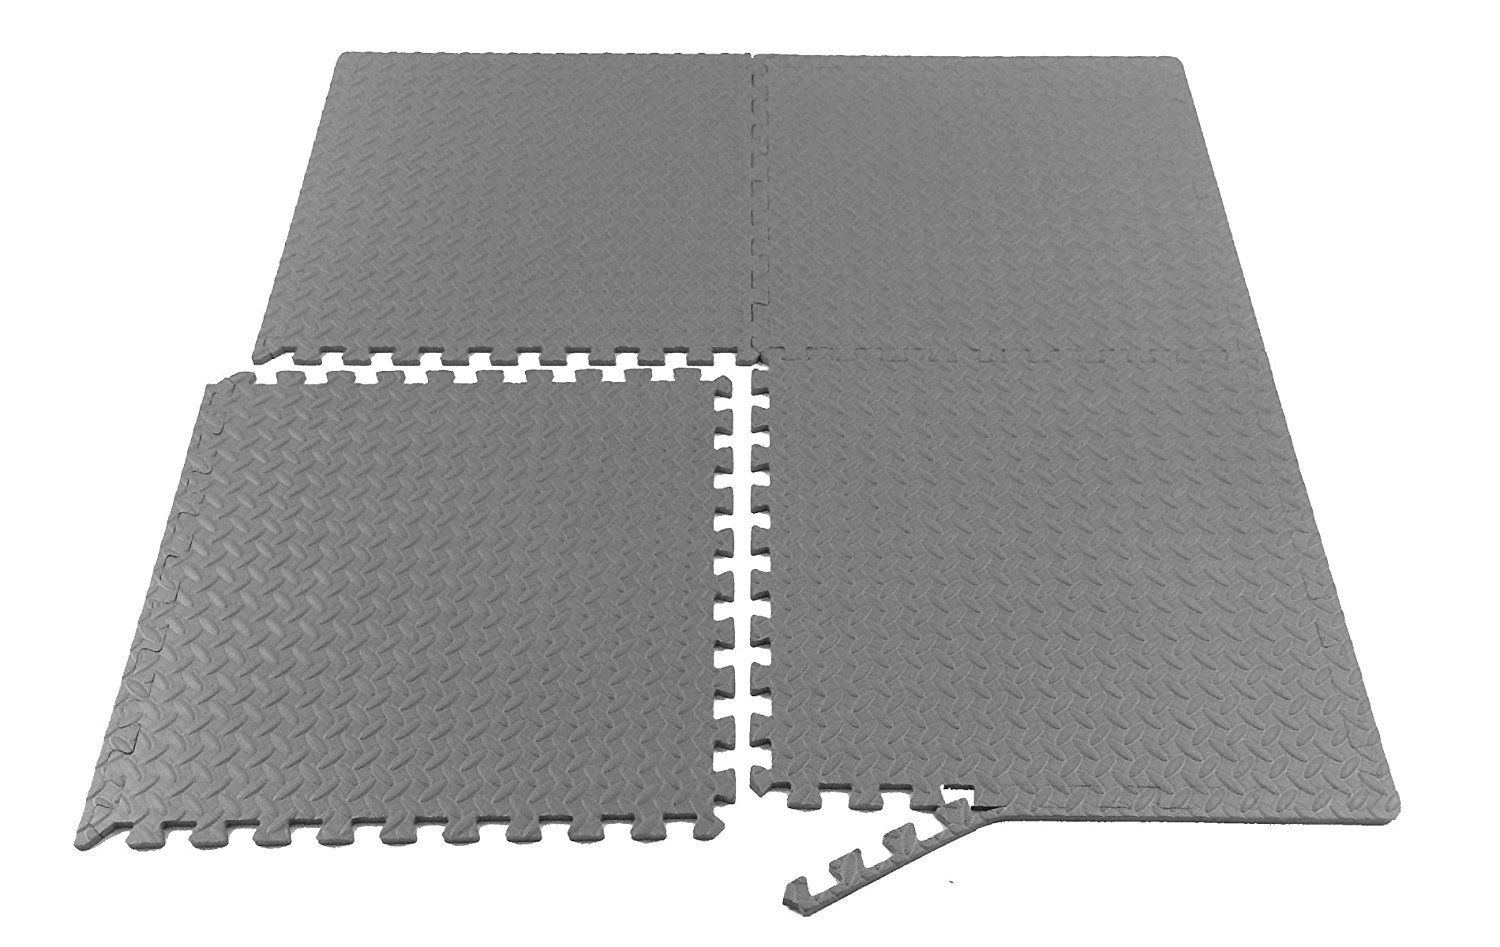 mm eva protective flooring ca mat amazon prosource workouts foam interlocking puzzle exercise tiles and dp gym cushion for equipment black mats